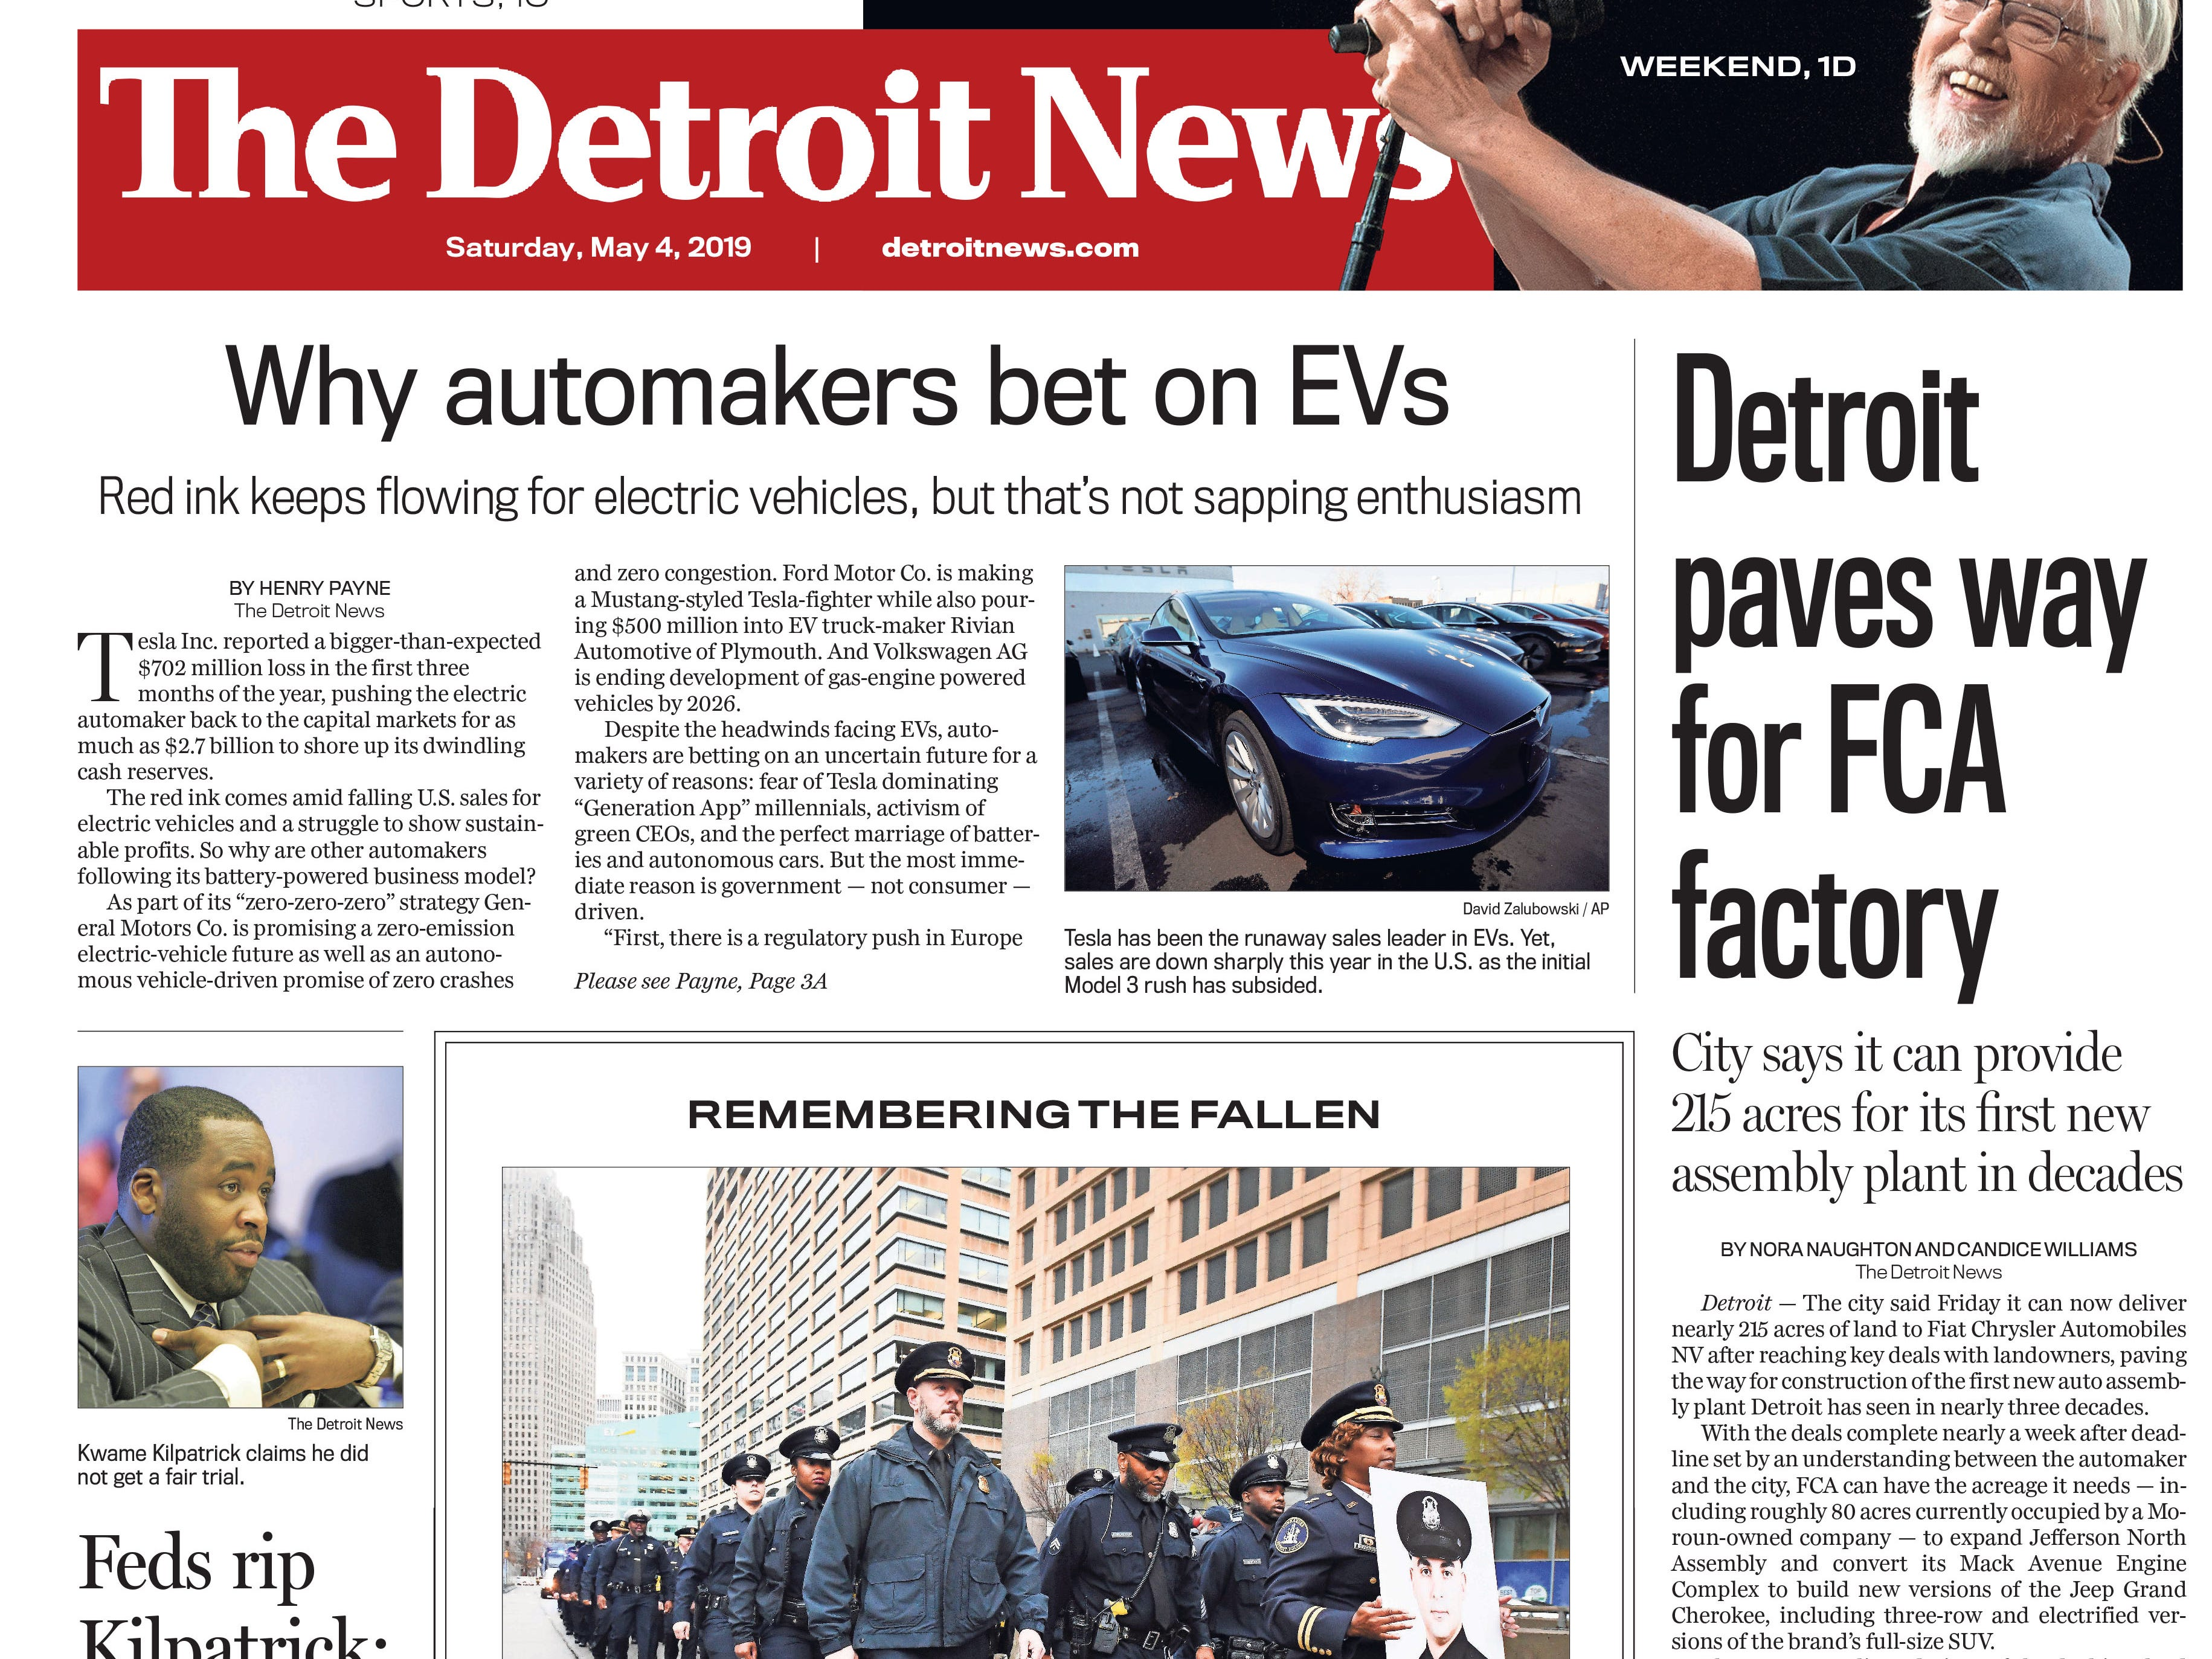 The front page of the Detroit News on Saturday, May 4, 2019.